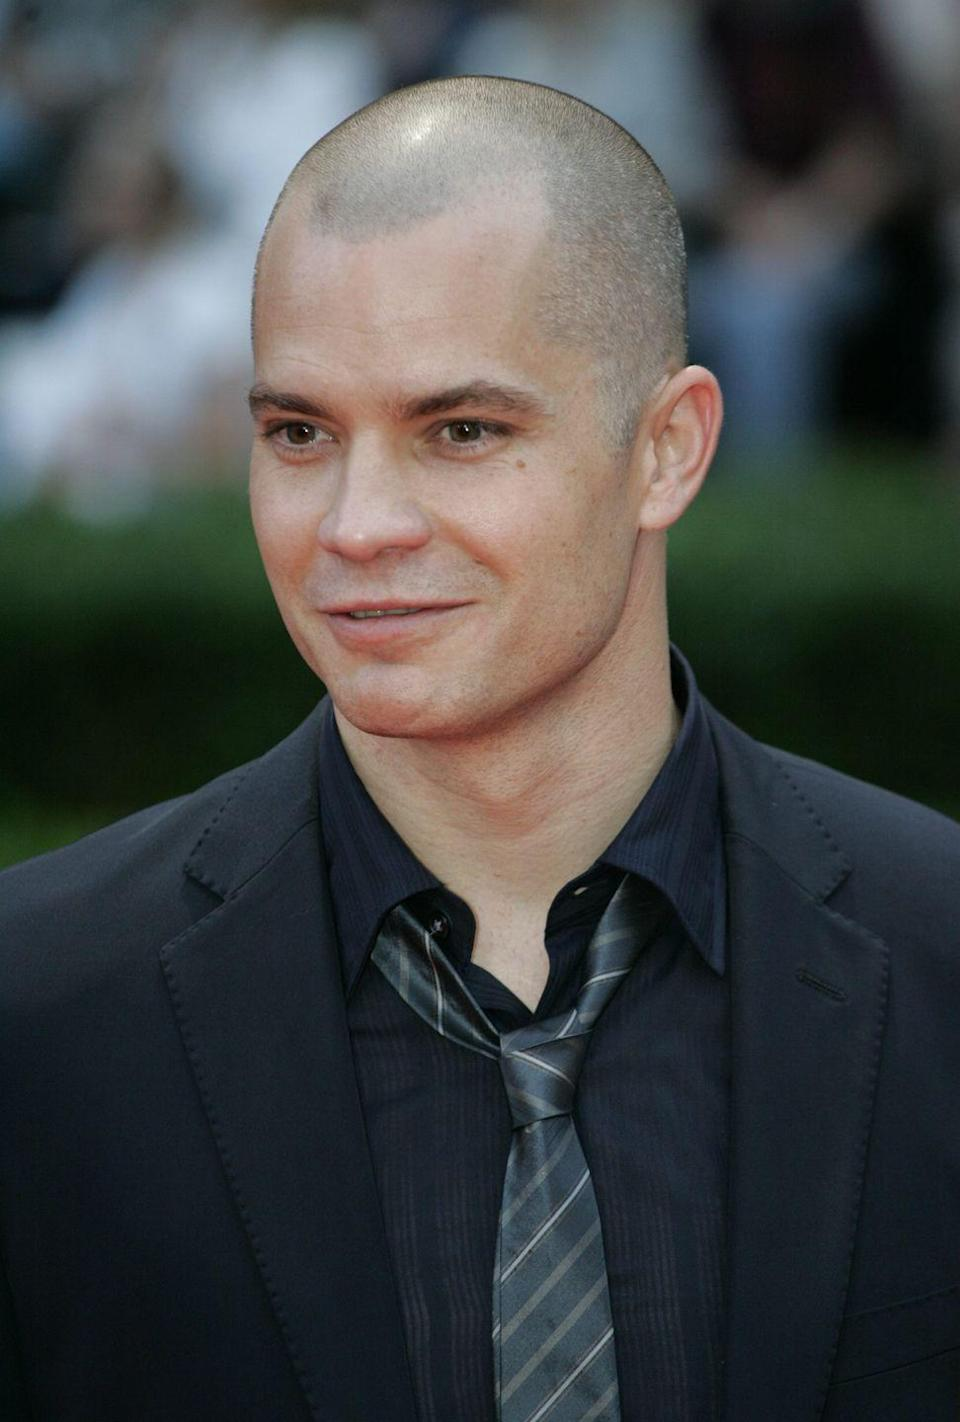 <p>In order to play Agent 47 properly in <em>Hitman</em>, Timothy Olyphant debuted a shaved head in the 2007 film. </p>